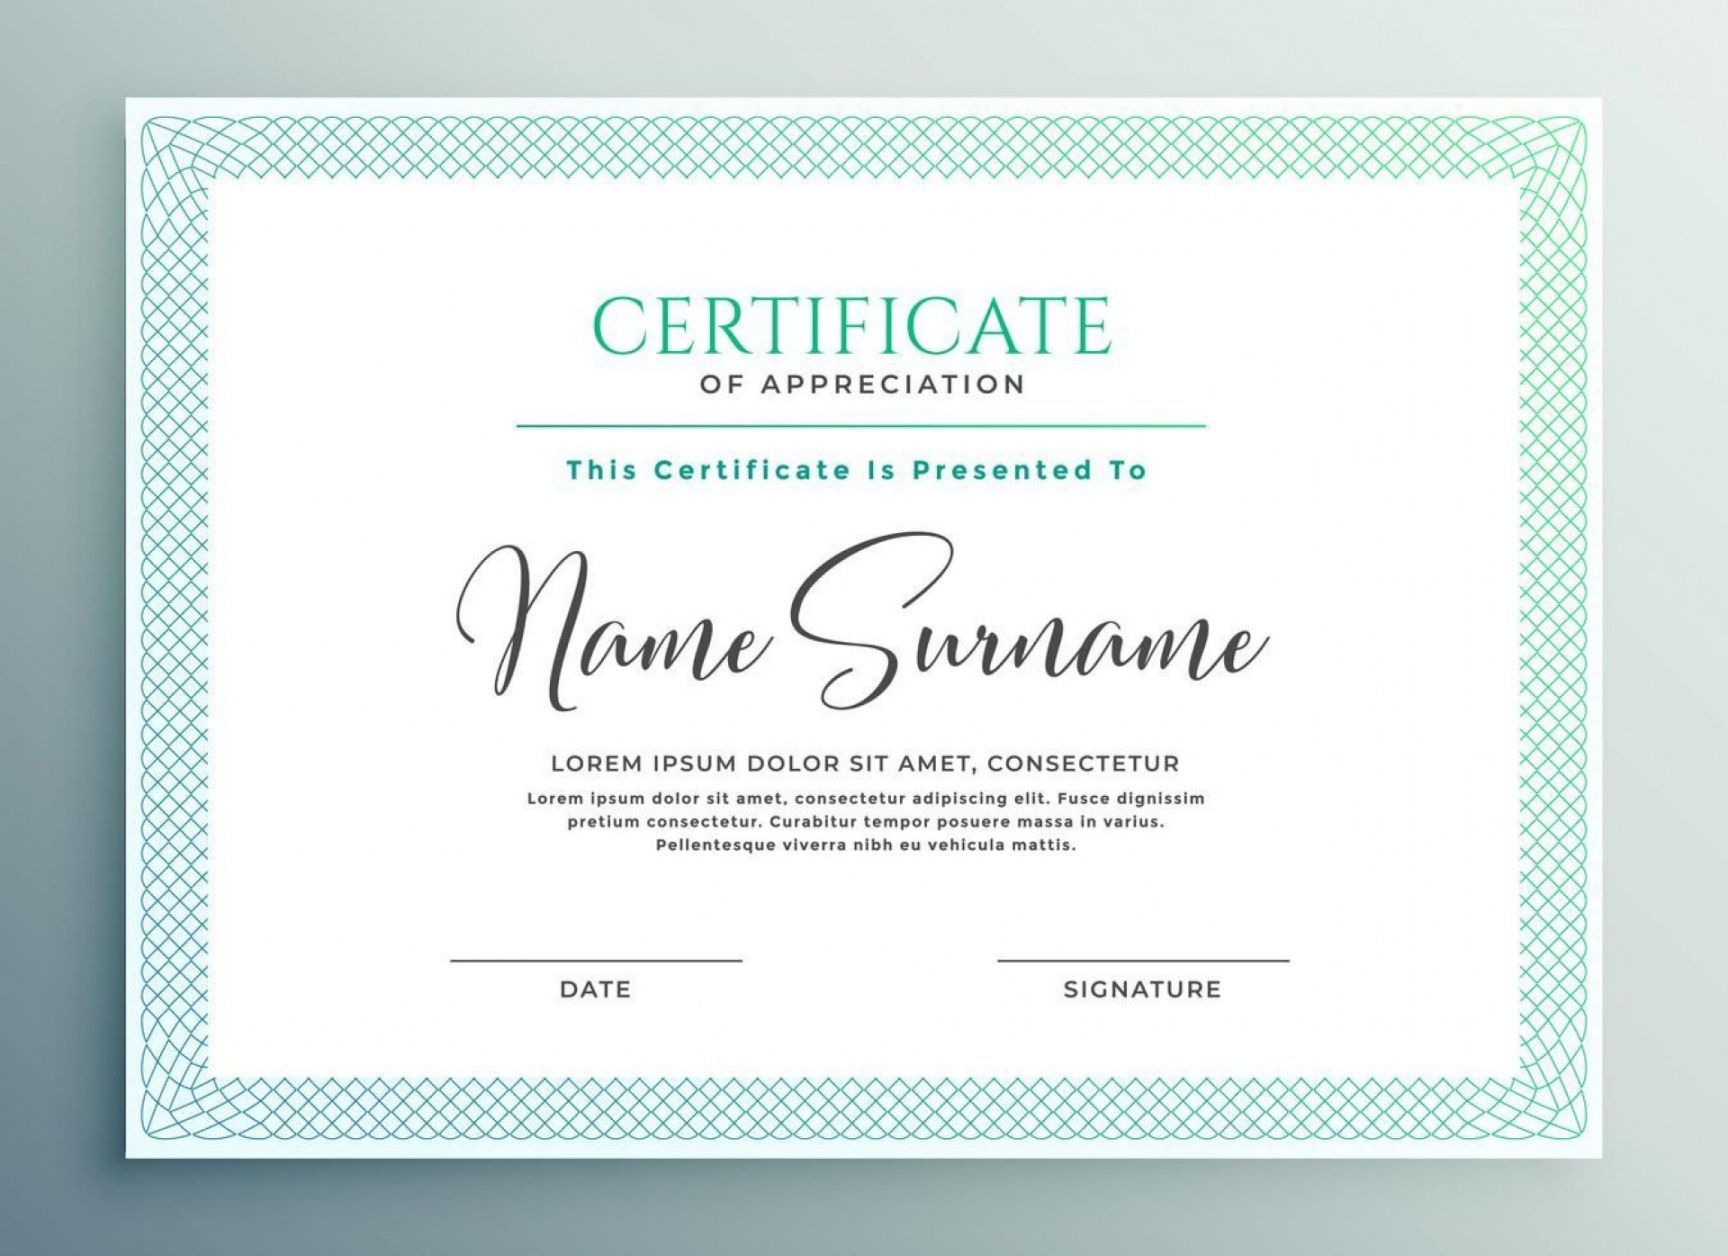 005 Fantastic Free Silent Auction Gift Certificate Template High Resolution Full